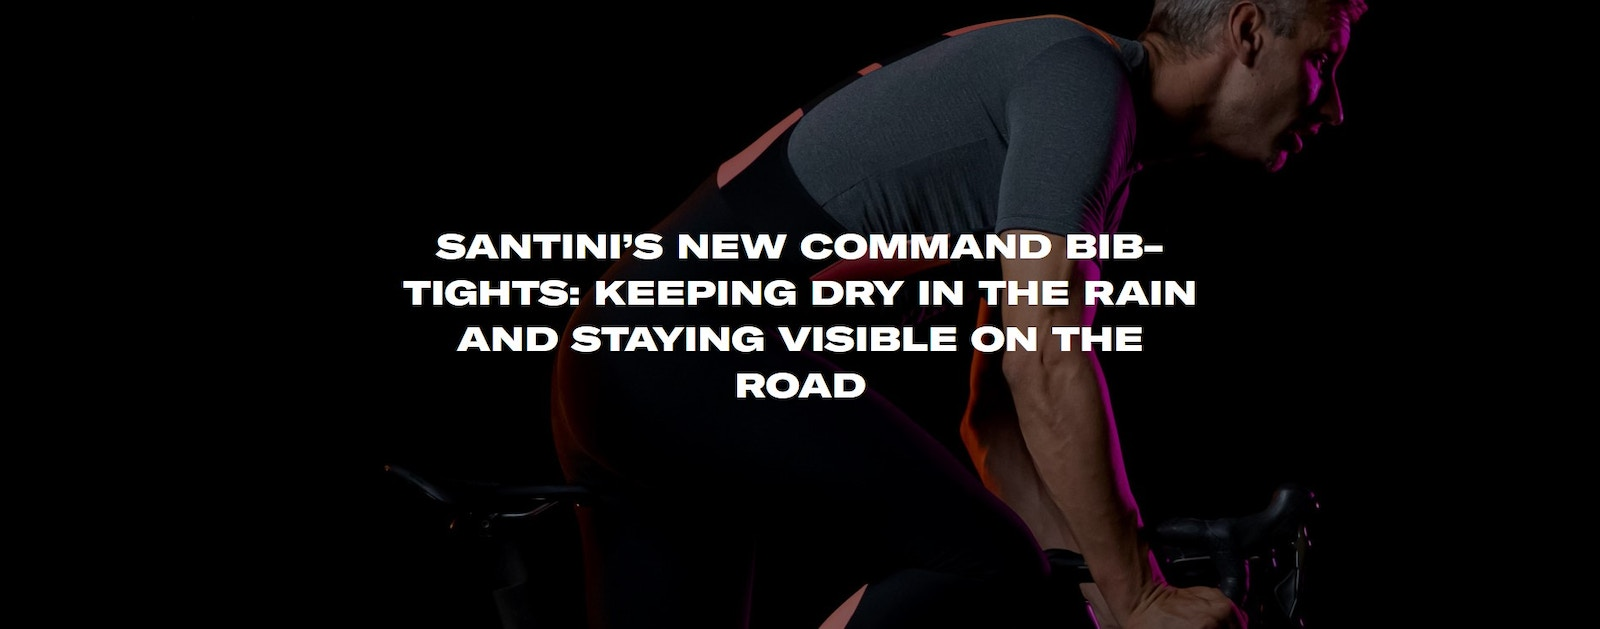 Santini - Santini's new Command bib-tights: Keeping dry in the rain & staying visible on the road